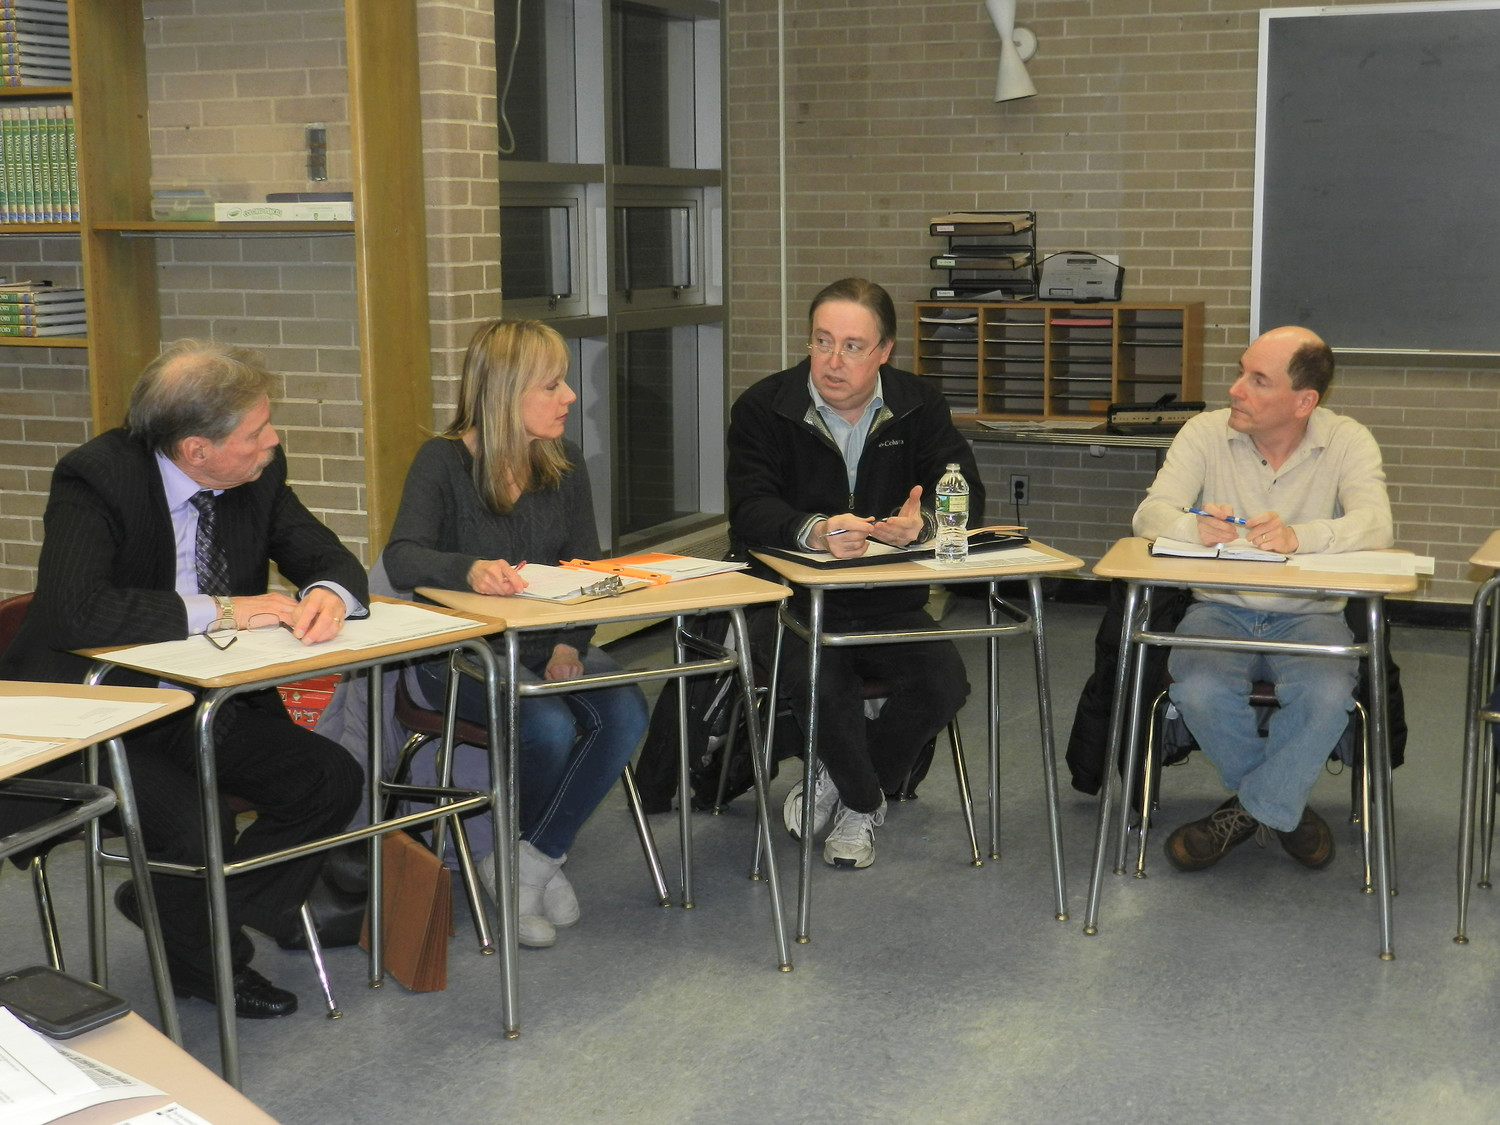 Residents Lloyd and Agatha Nadel, left, Joe Lopes and Steve Warshaw discussed the group's plans to oust New York American Water from the area at a North Shore Concerned Citizens meeting on April 17.